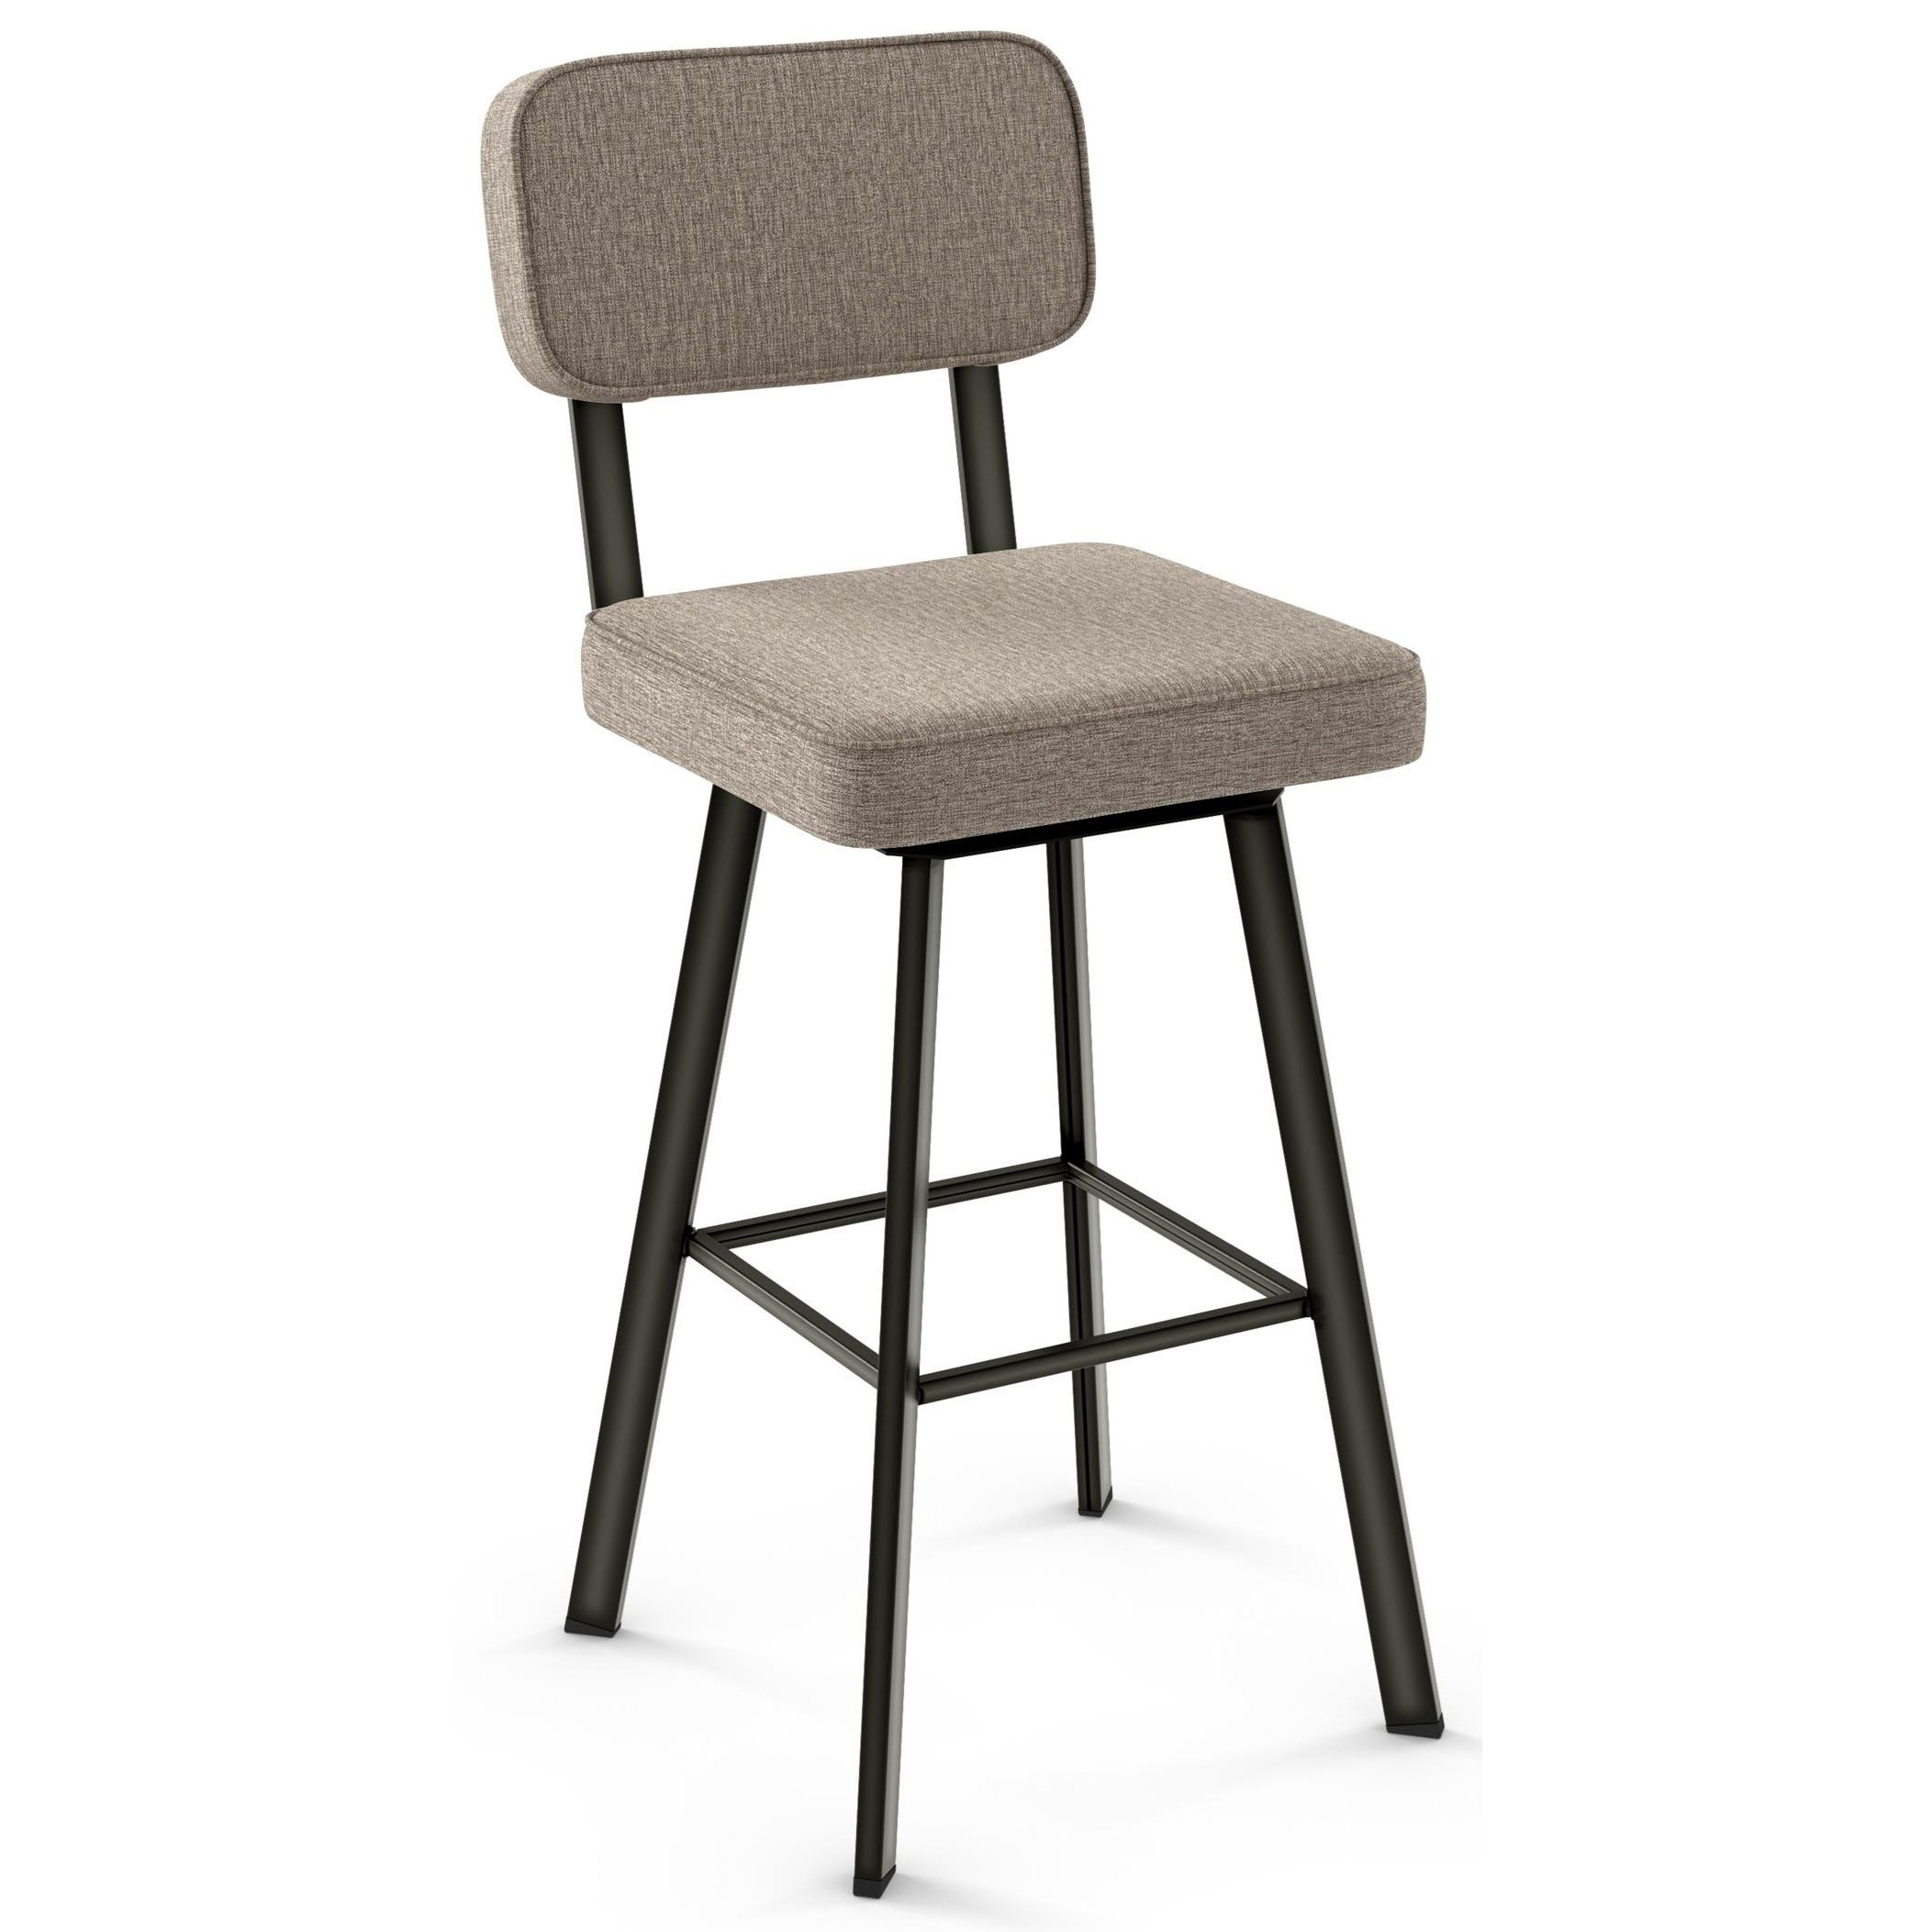 Industrial Brixton Swivel Stool, Bar Height by Amisco at Dinette Depot